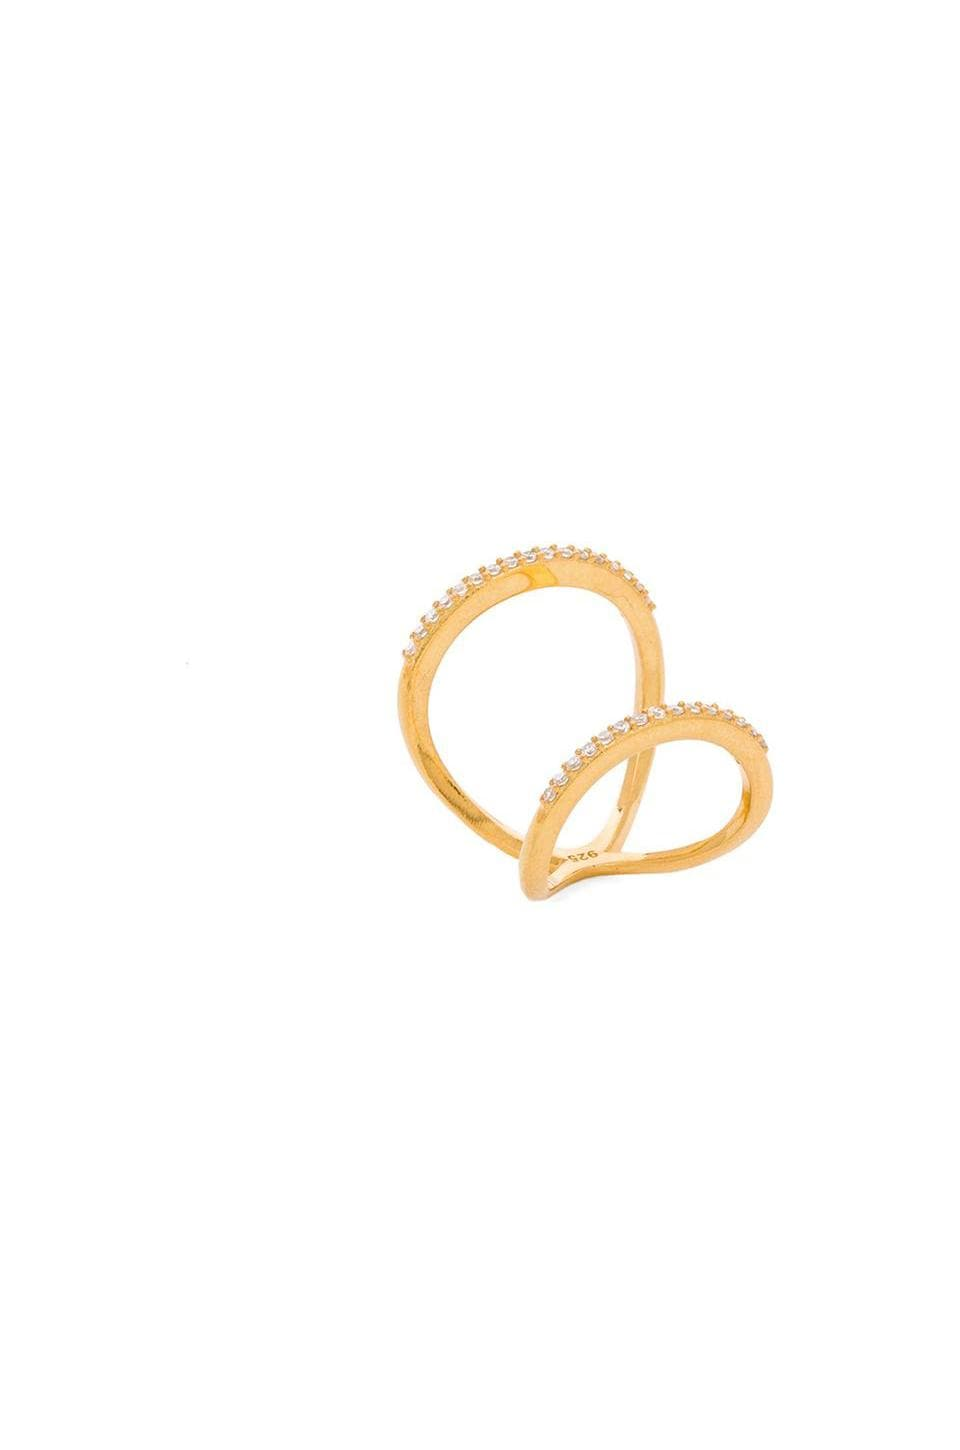 Natalie B Jewelry Infinity Ring in Gold